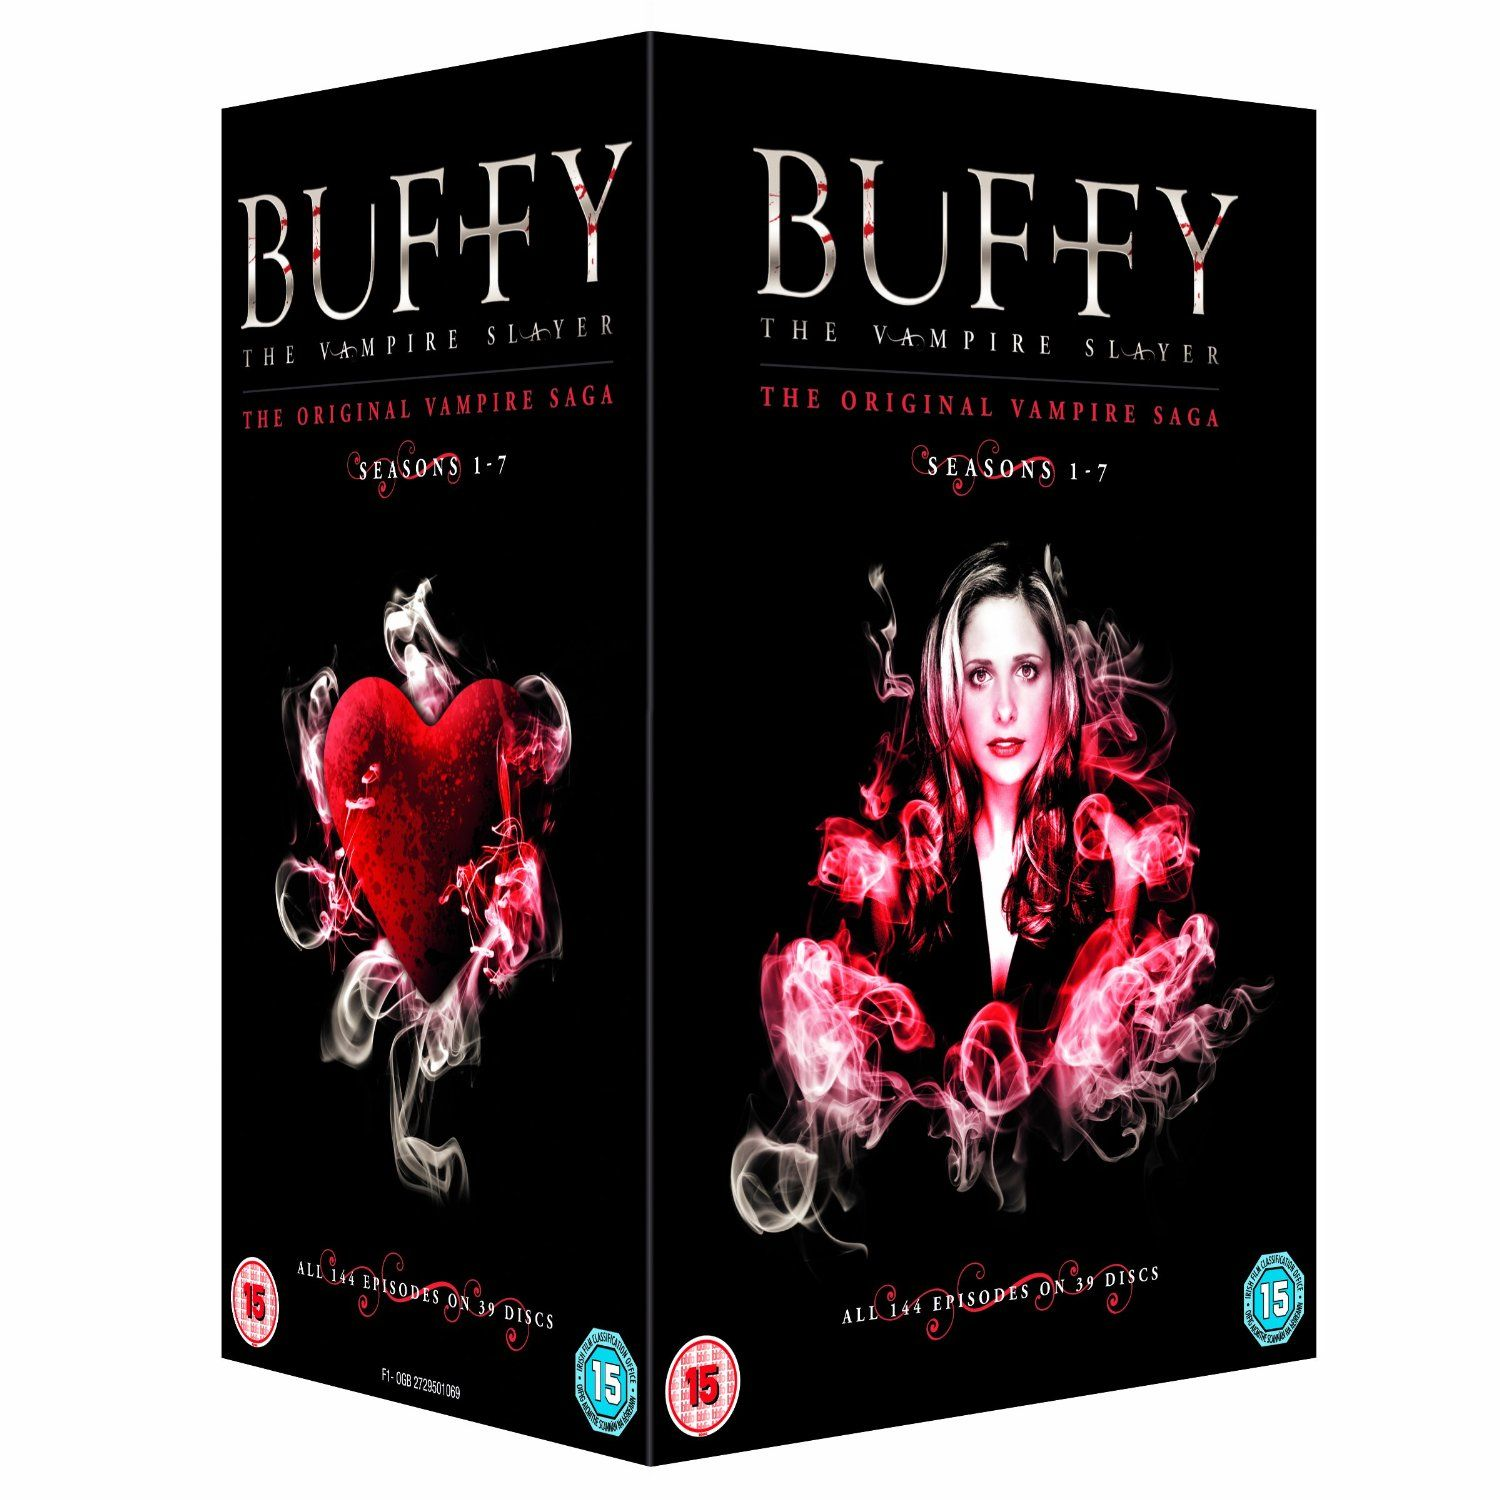 Buffy the vampire slayer complete seasons 1 7 dvd amazon co